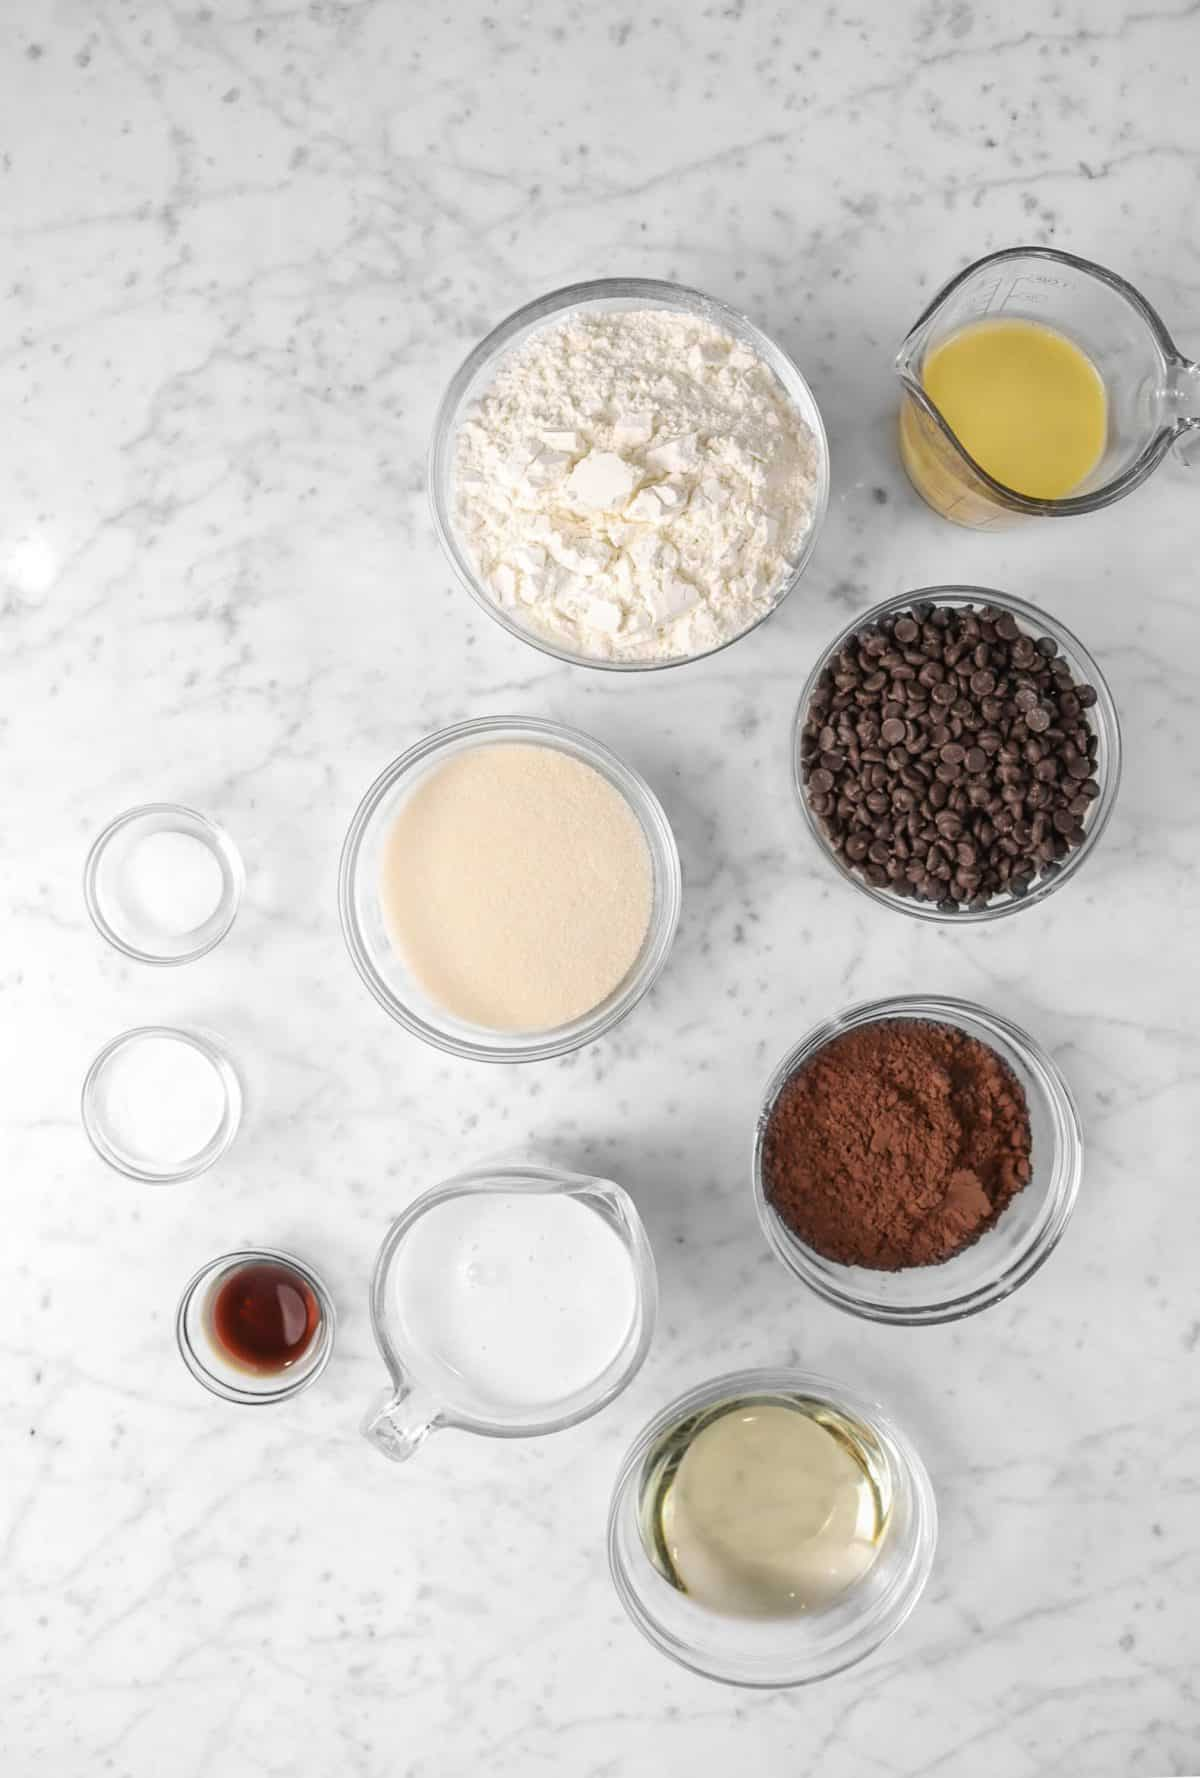 ingredients for vegan chocolate muffins on a marble counter